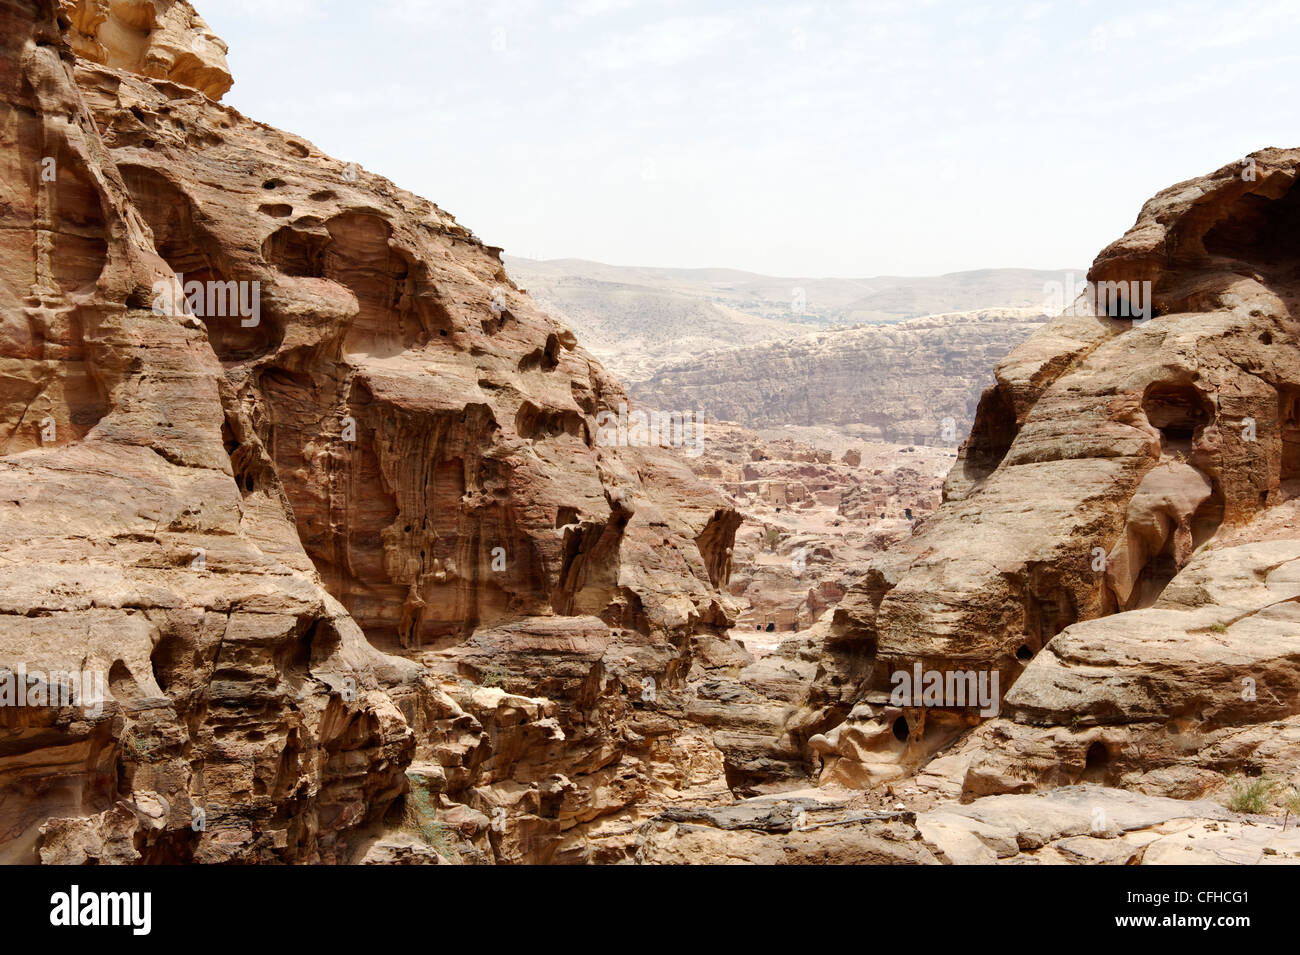 Petra. Jordan. View of the spectacular rock formations and dramatic and rugged landscape of the vast ancient rose Stock Photo